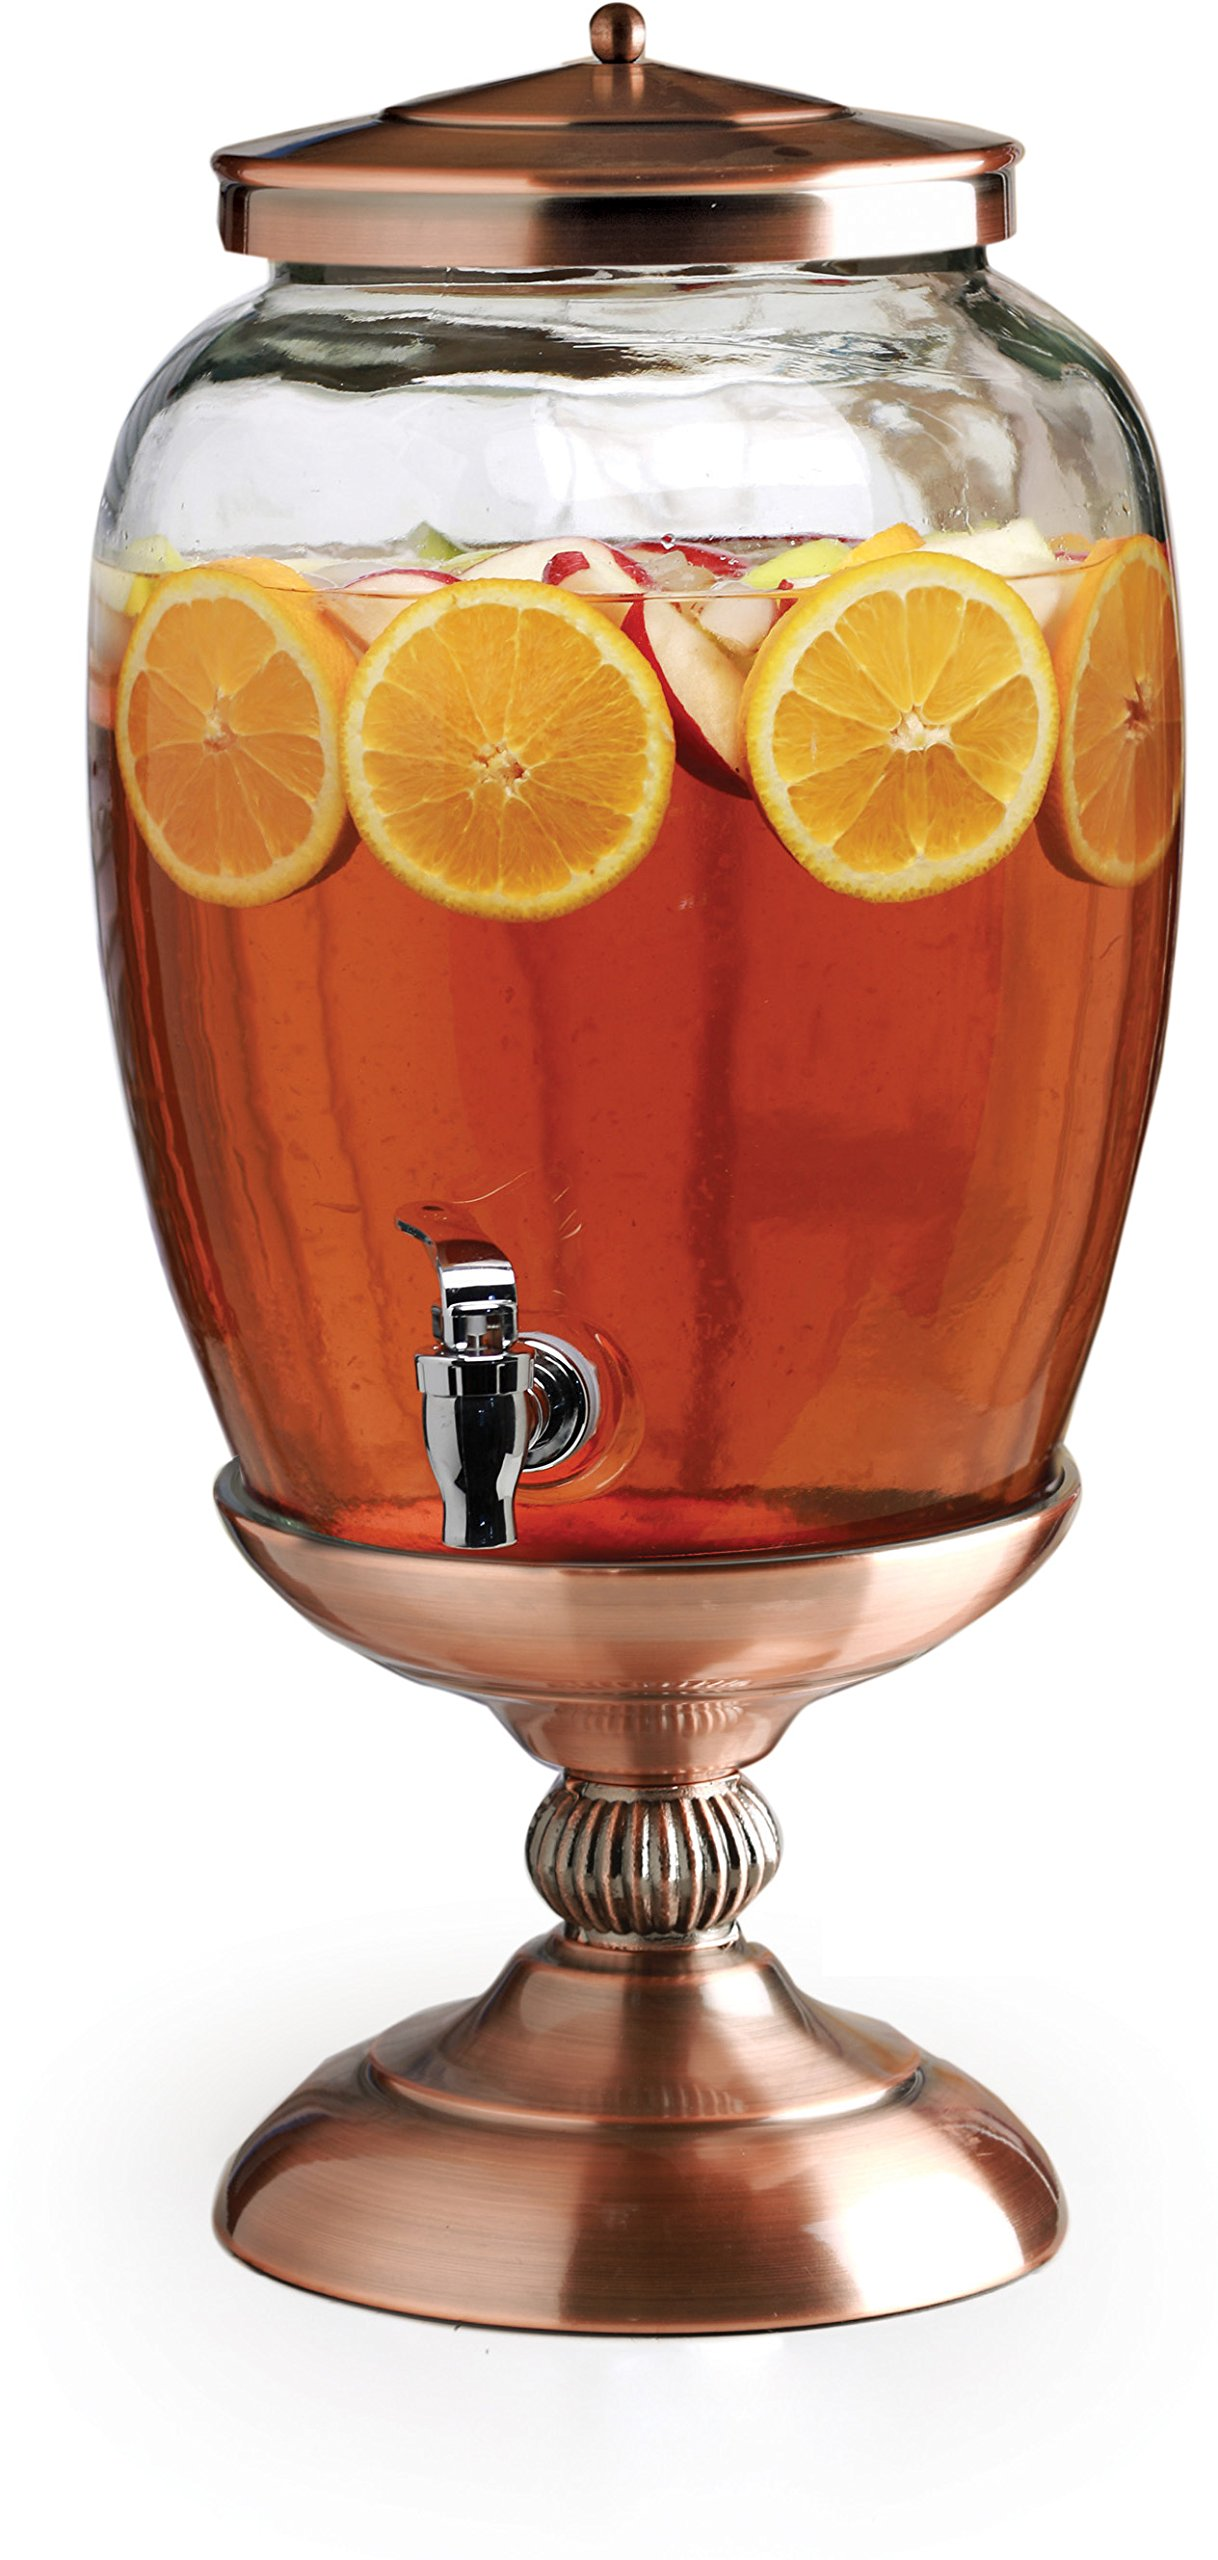 Circleware 68162 Celebrations Elegant Glass Beverage Dispenser Stand and Lid Entertainment Kitchen Glassware Pitcher for Water, Juice, Wine, Kombucha and Cold Drinks, Huge 3.1 Gal, Copper